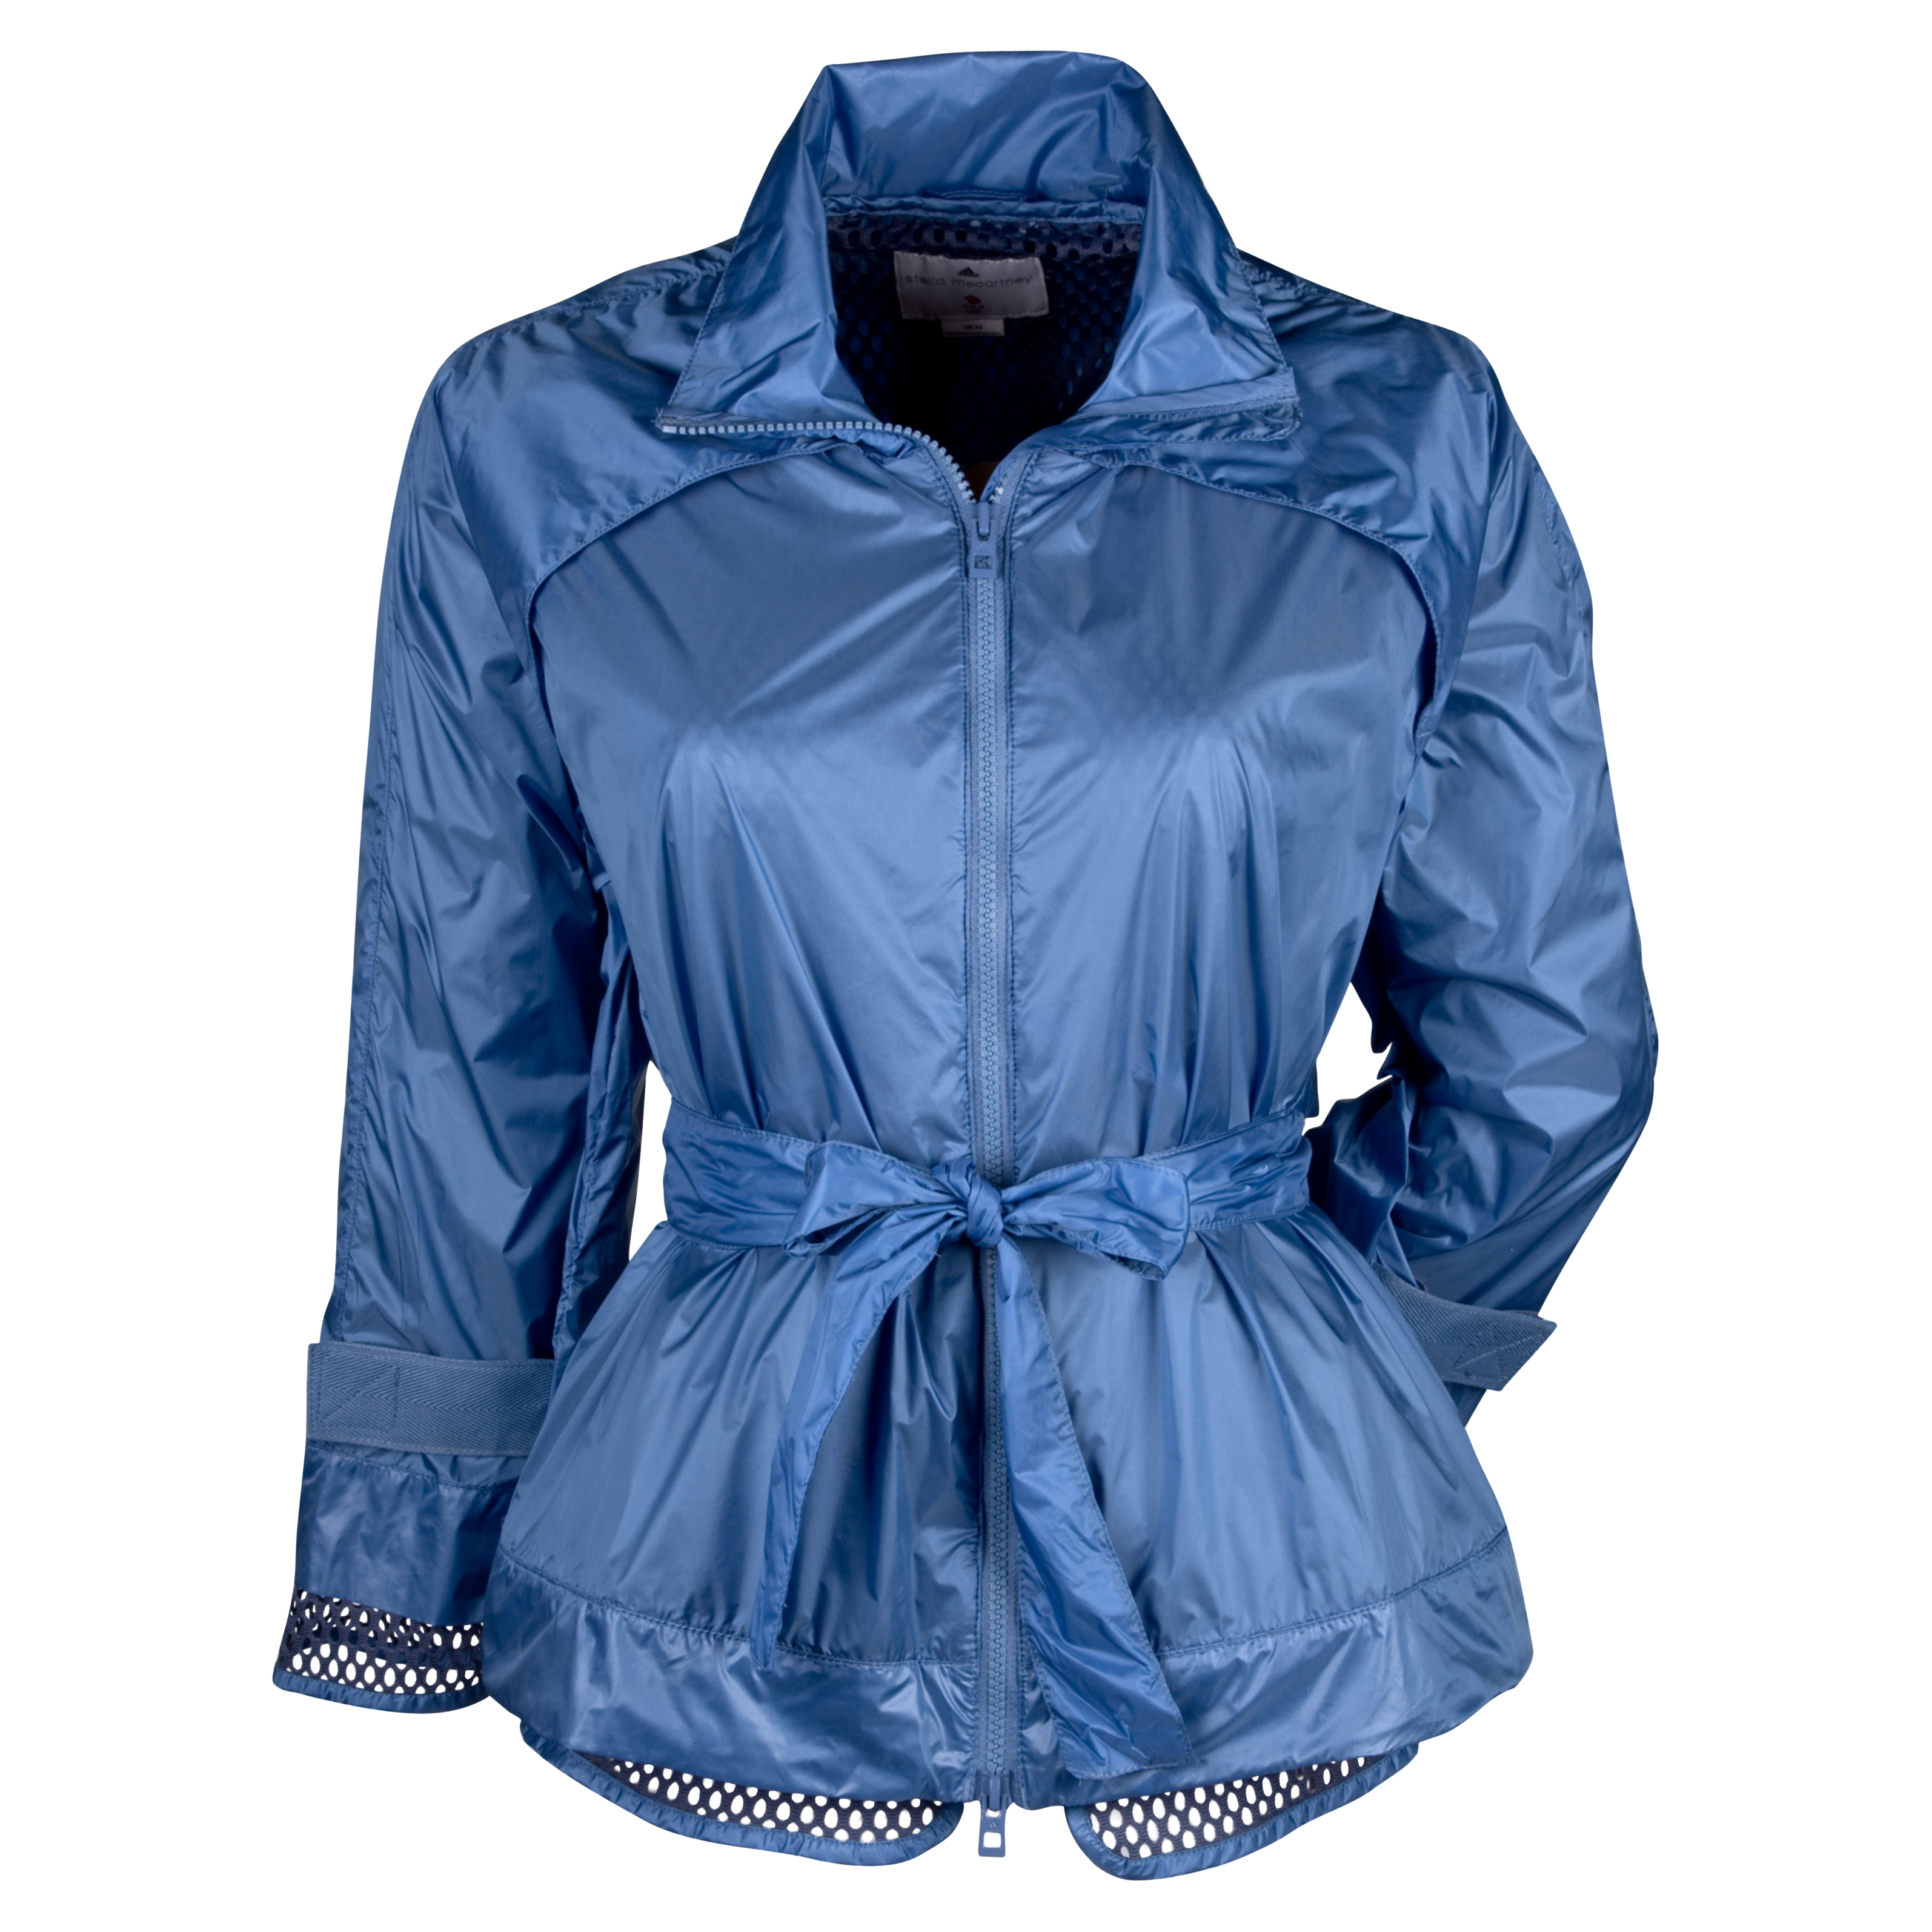 adidas Team GB Jacket - Atlantic Blue/Dark Atlantic - Womens